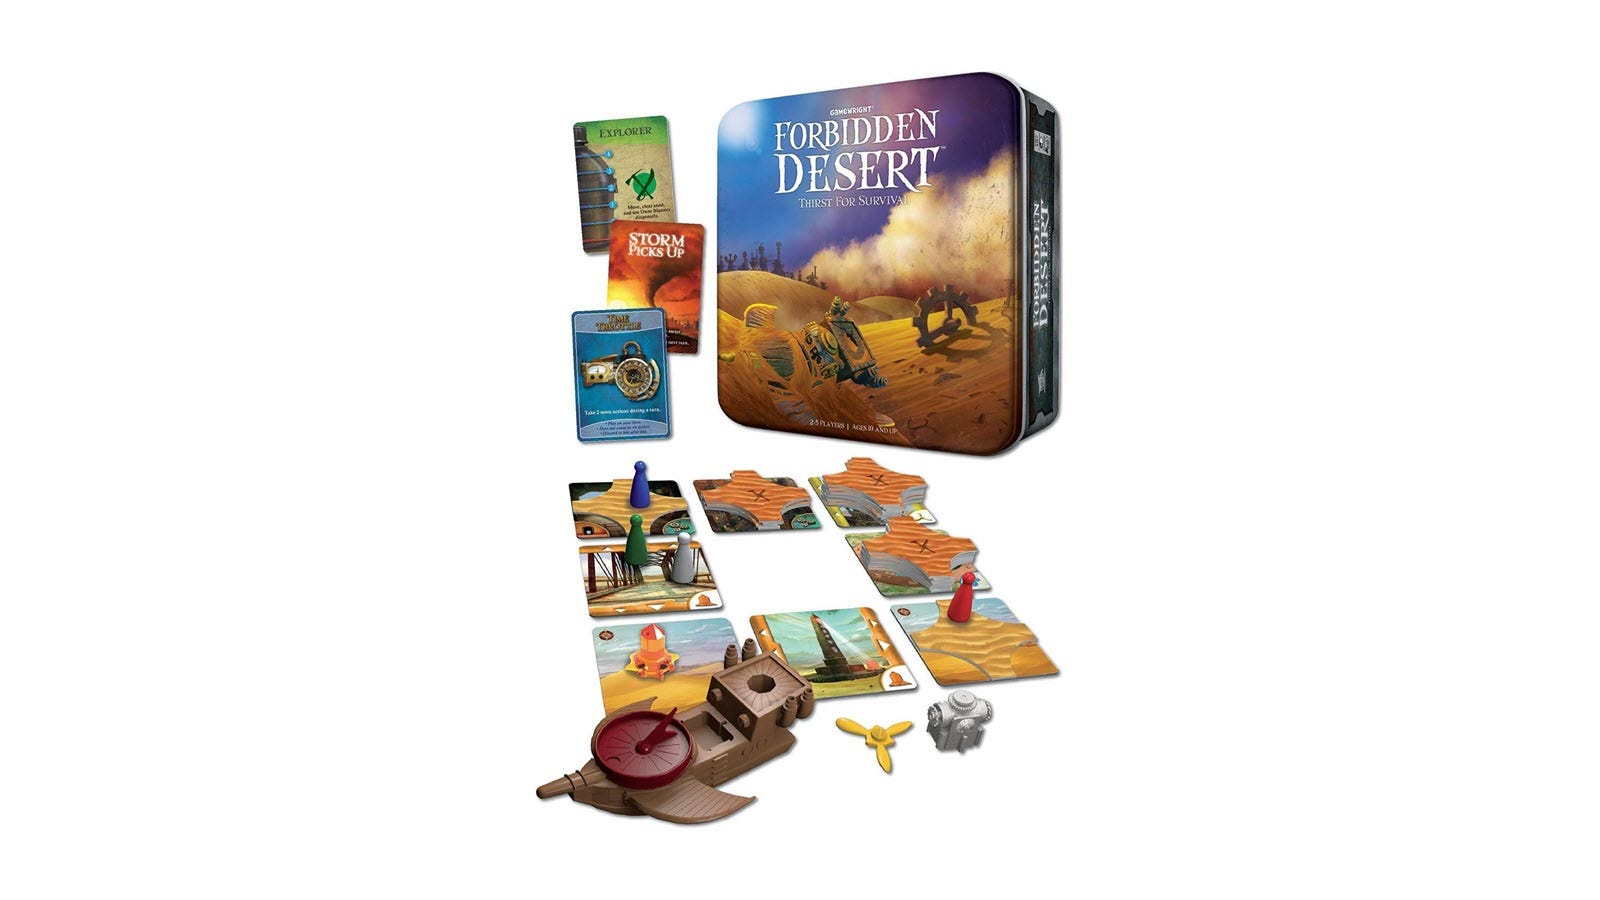 The Forbidden Desert game box and board featuring a solar-powered aircraft.